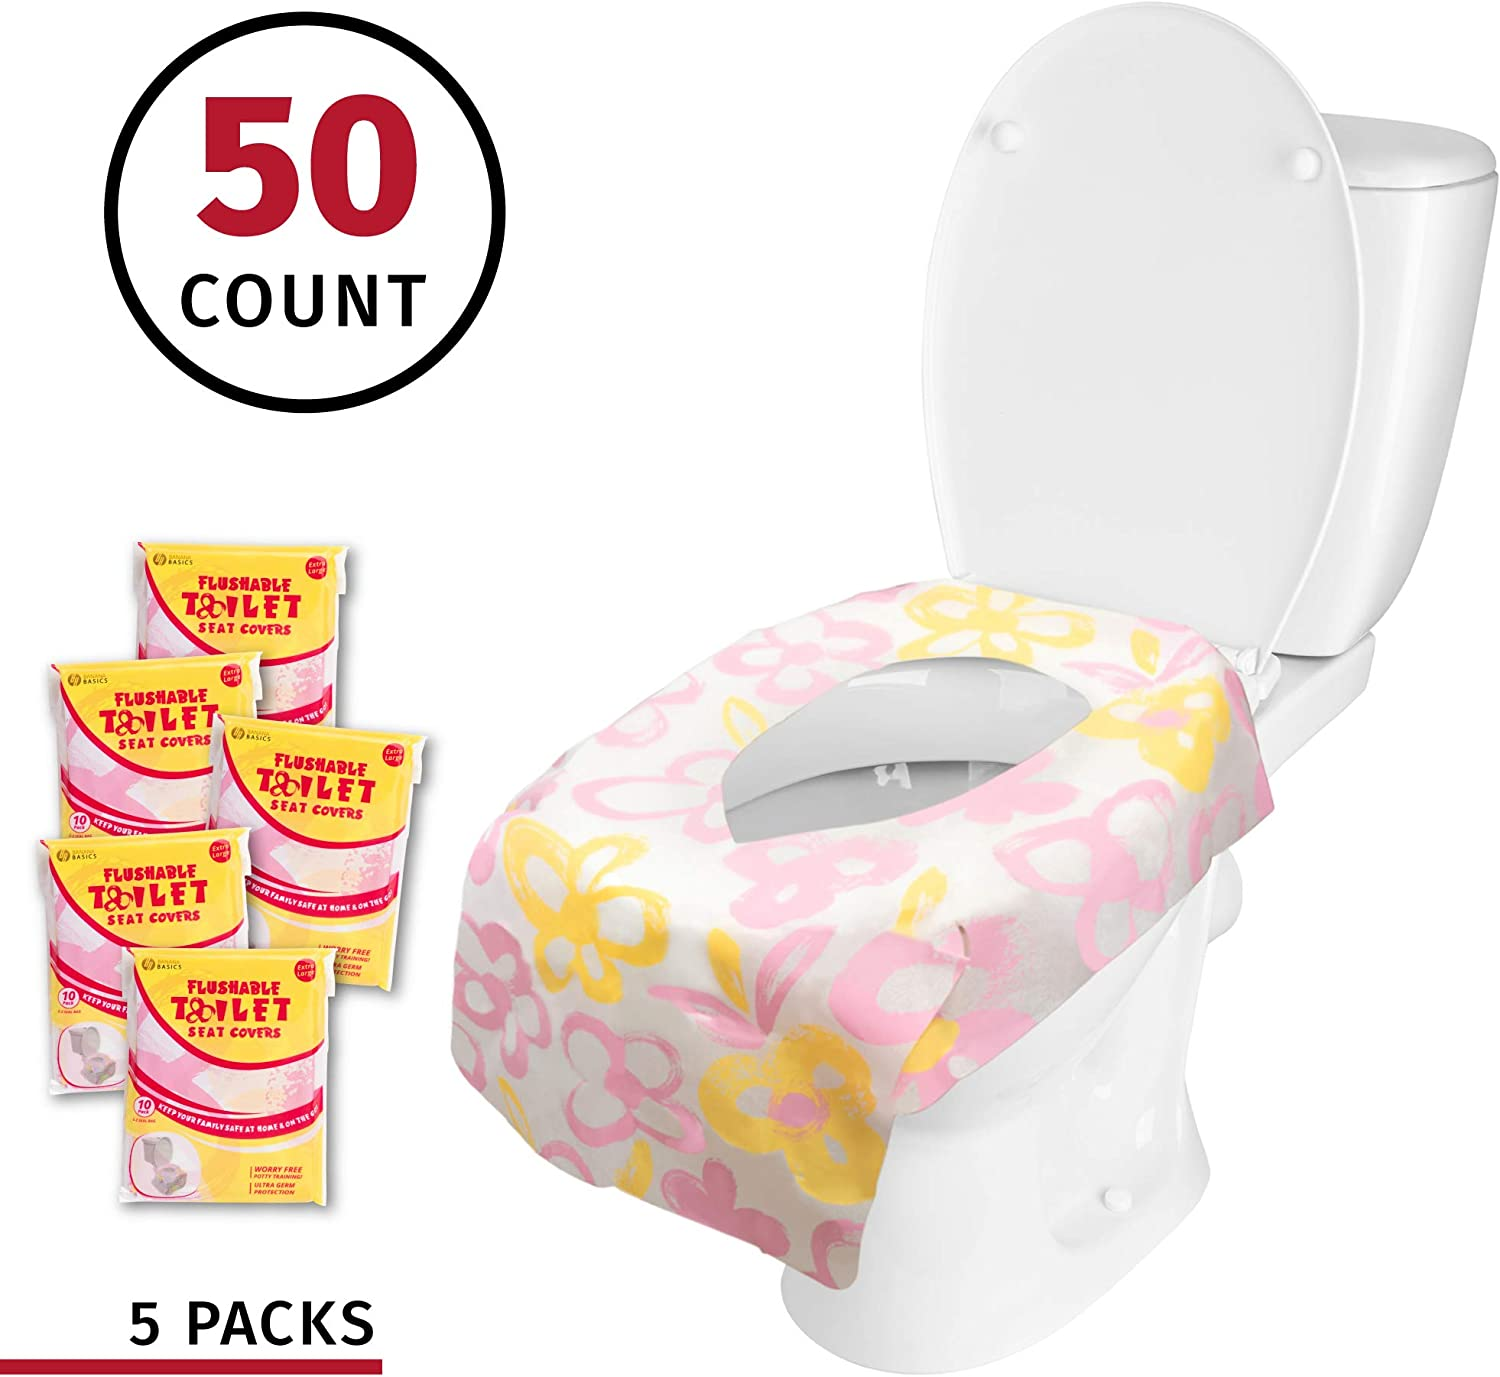 Banana Basics Flushable Disposable Paper Toilet Seat Cover Messes | Cars, 50 Pack 5 Packs, 10 Each Reduce Germs X-Large Coverage Cleanliness Kid-Friendly Promotes Proper Hygiene